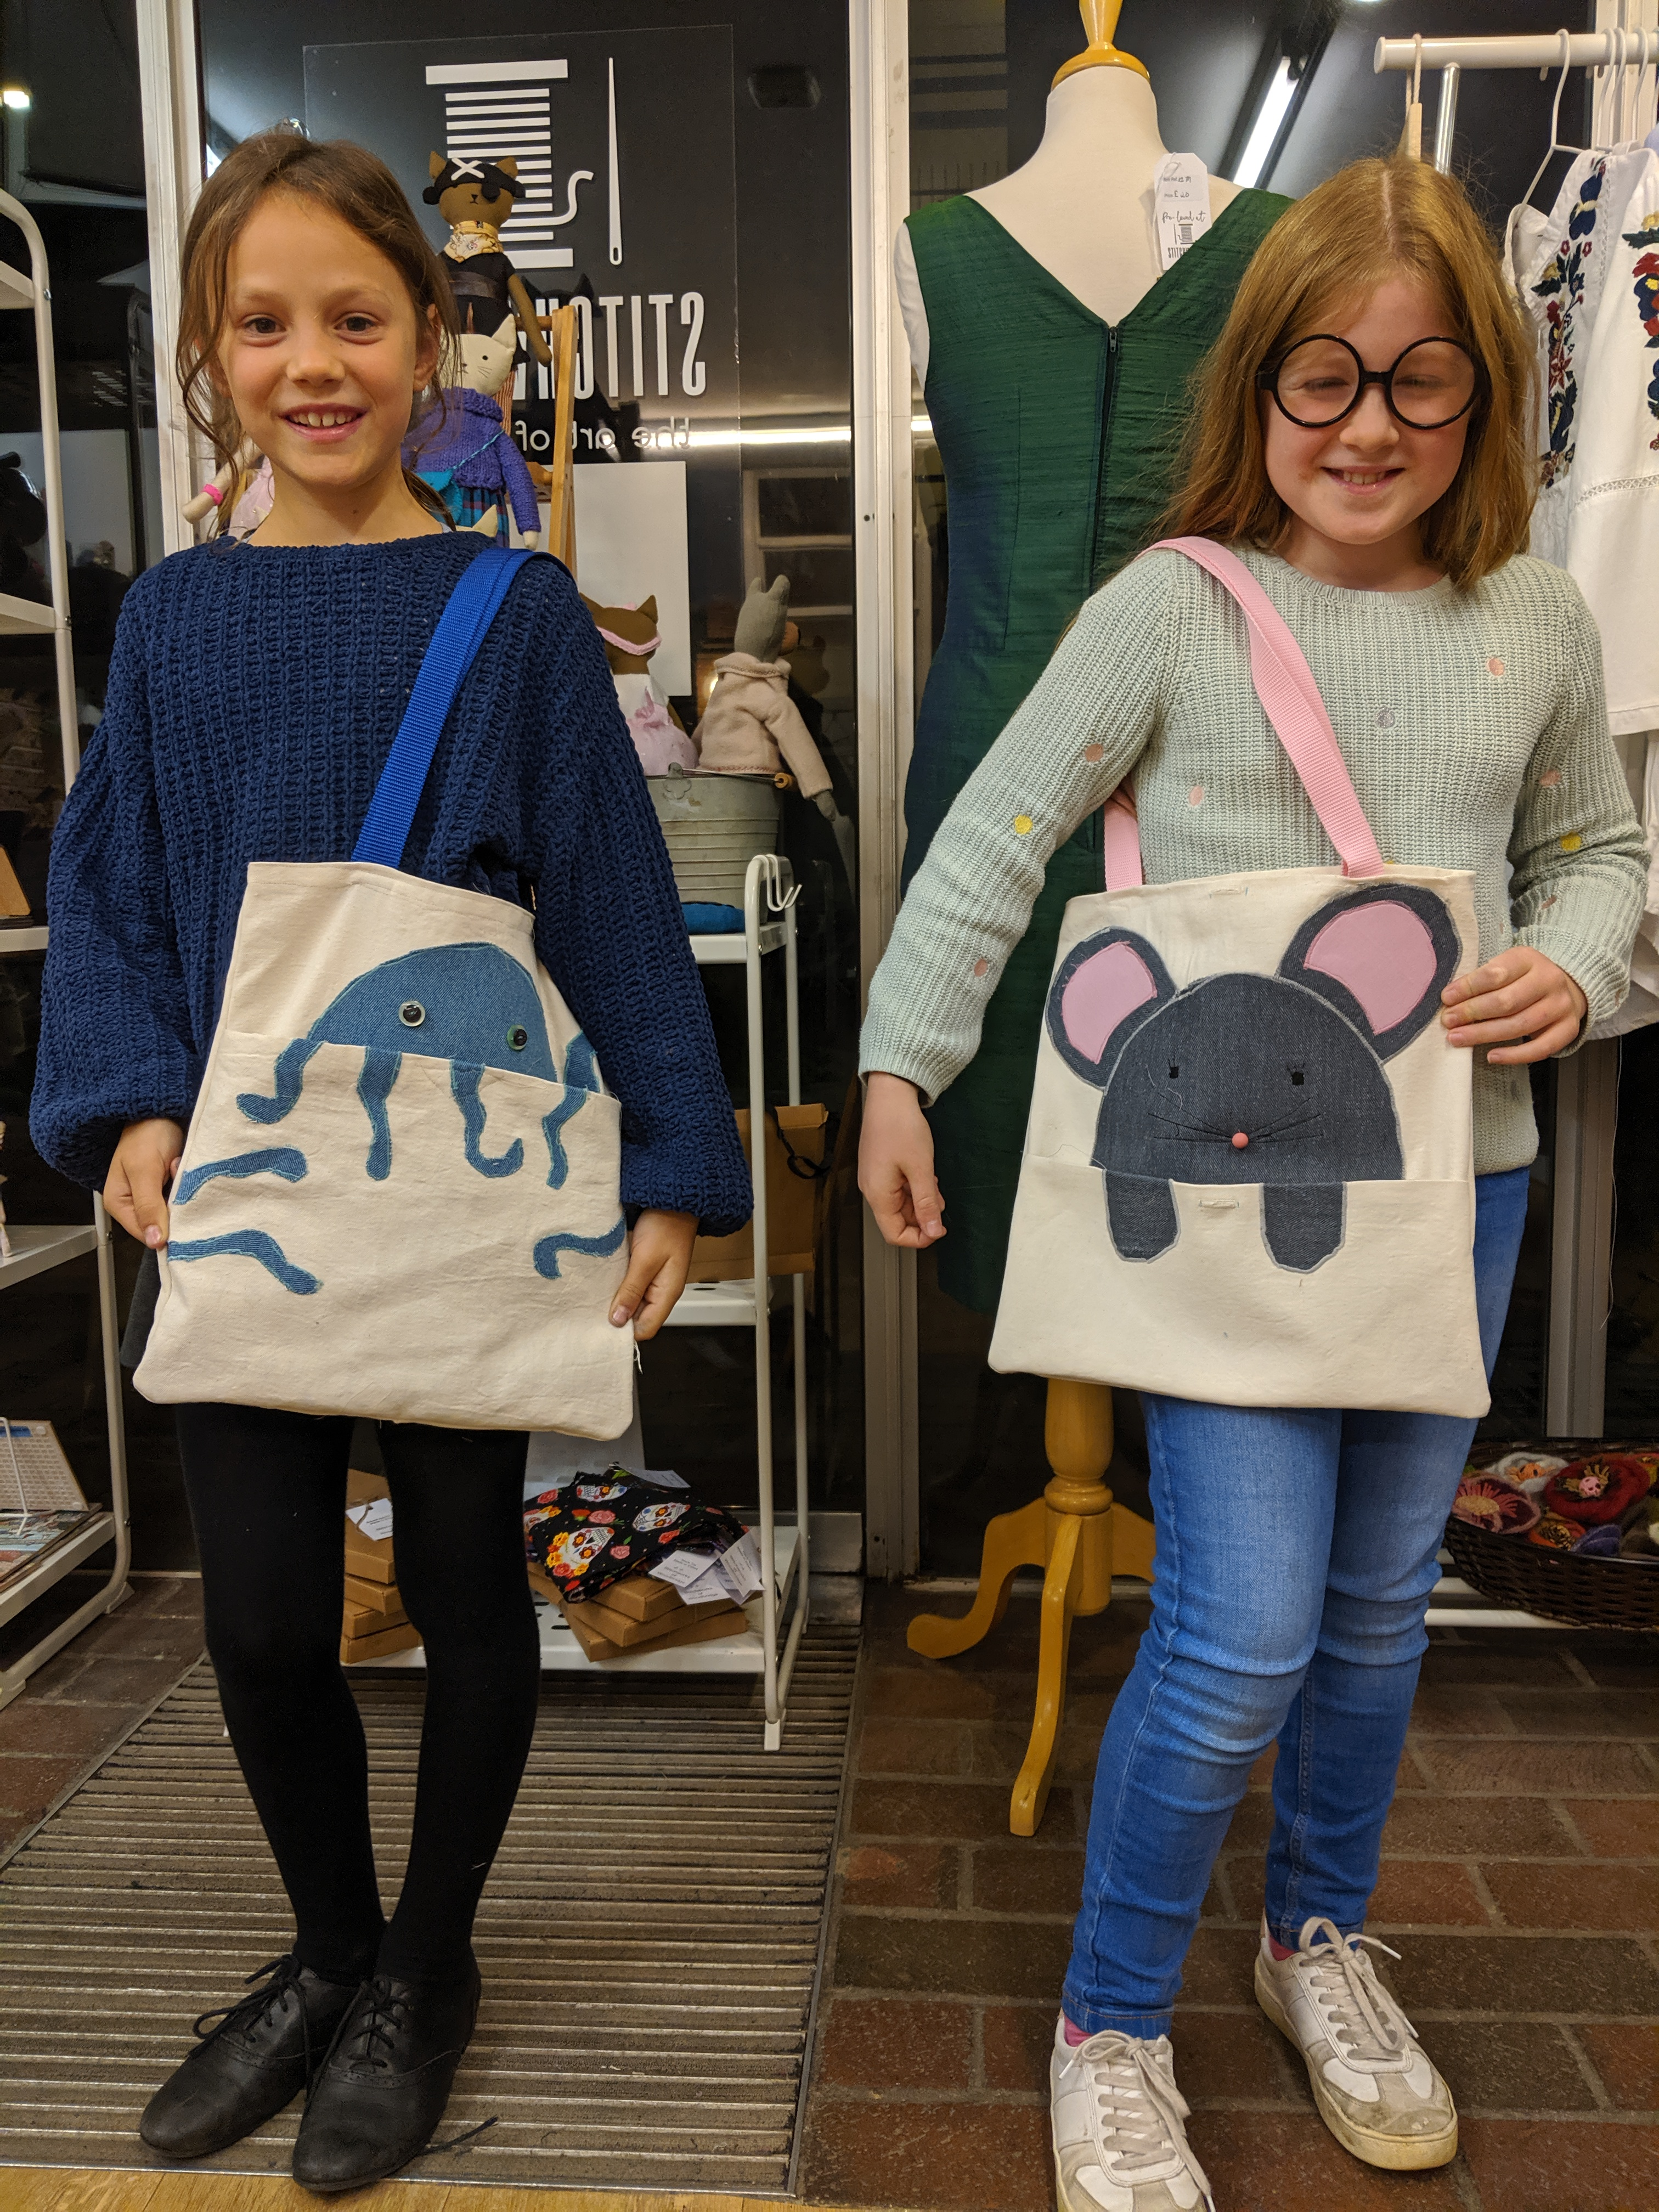 Sophie an dIsabel bags